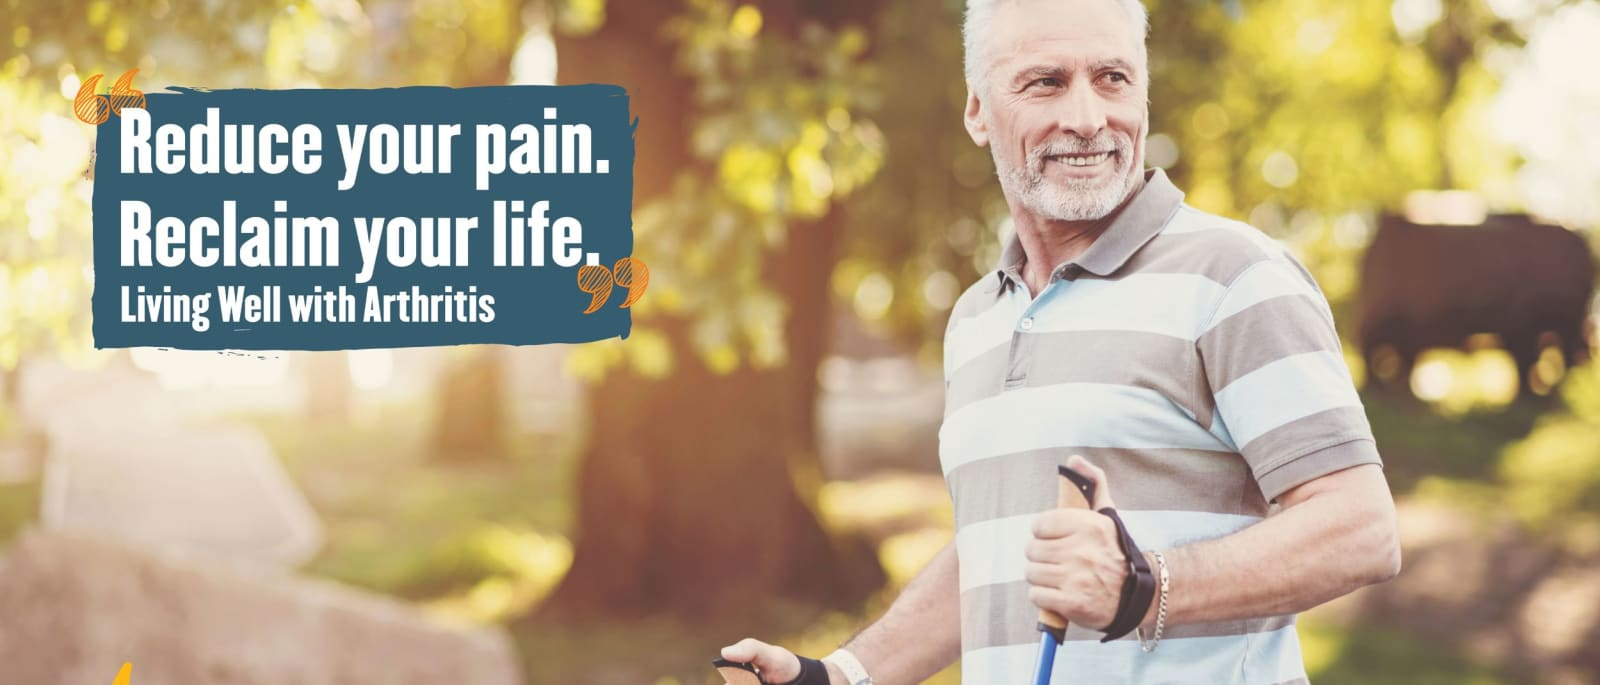 Living Well with Arthritis, Athlone